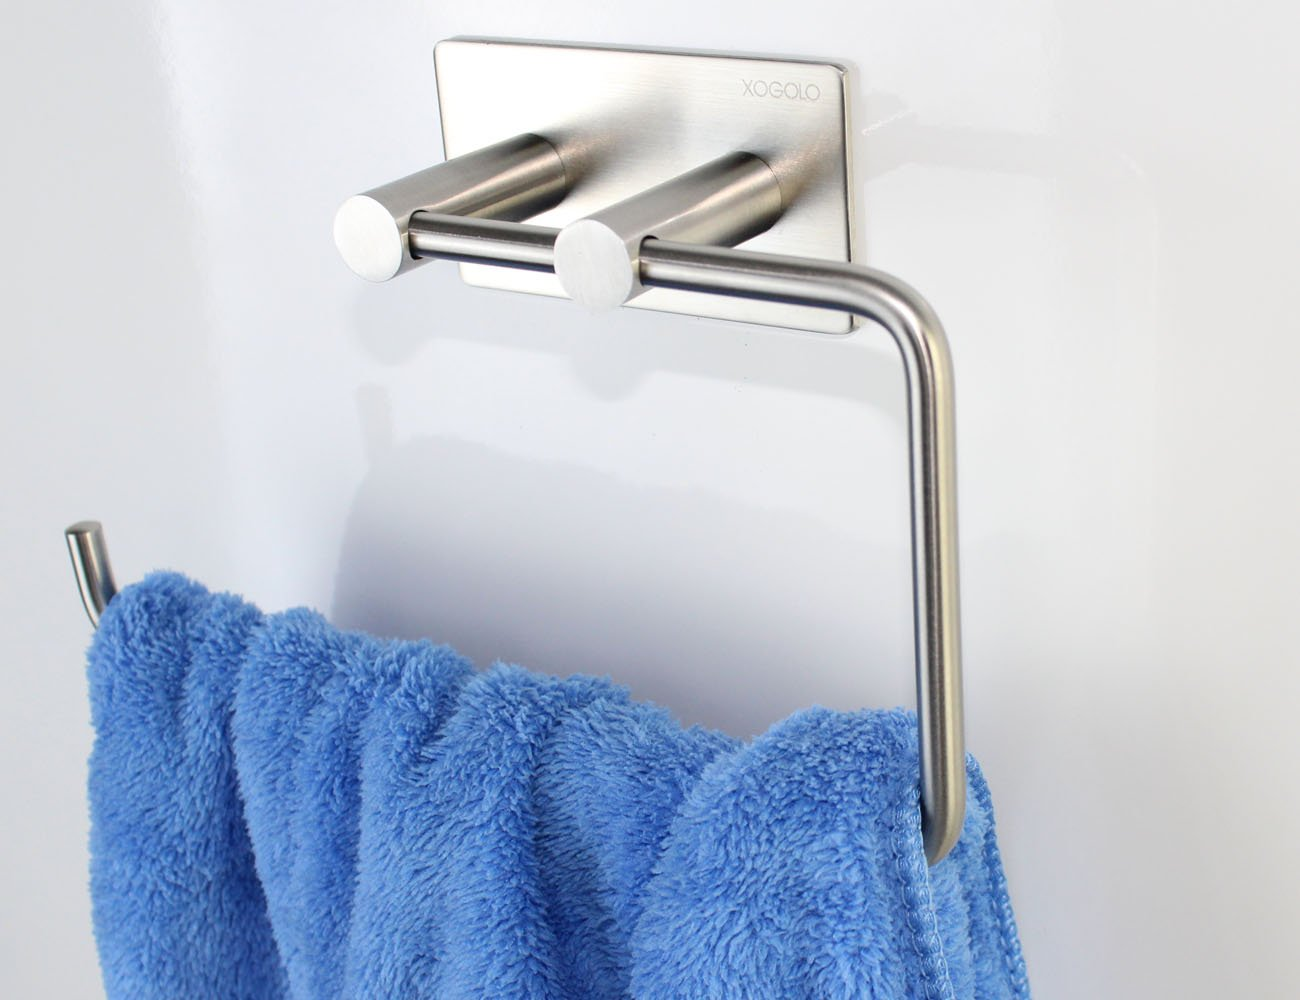 Xogolo Bathroom Lavatory Towel Holder, 3M Self Adhesive Towel Ring, SUS304 Stainless Steel Wall Mount, Brushed Finished